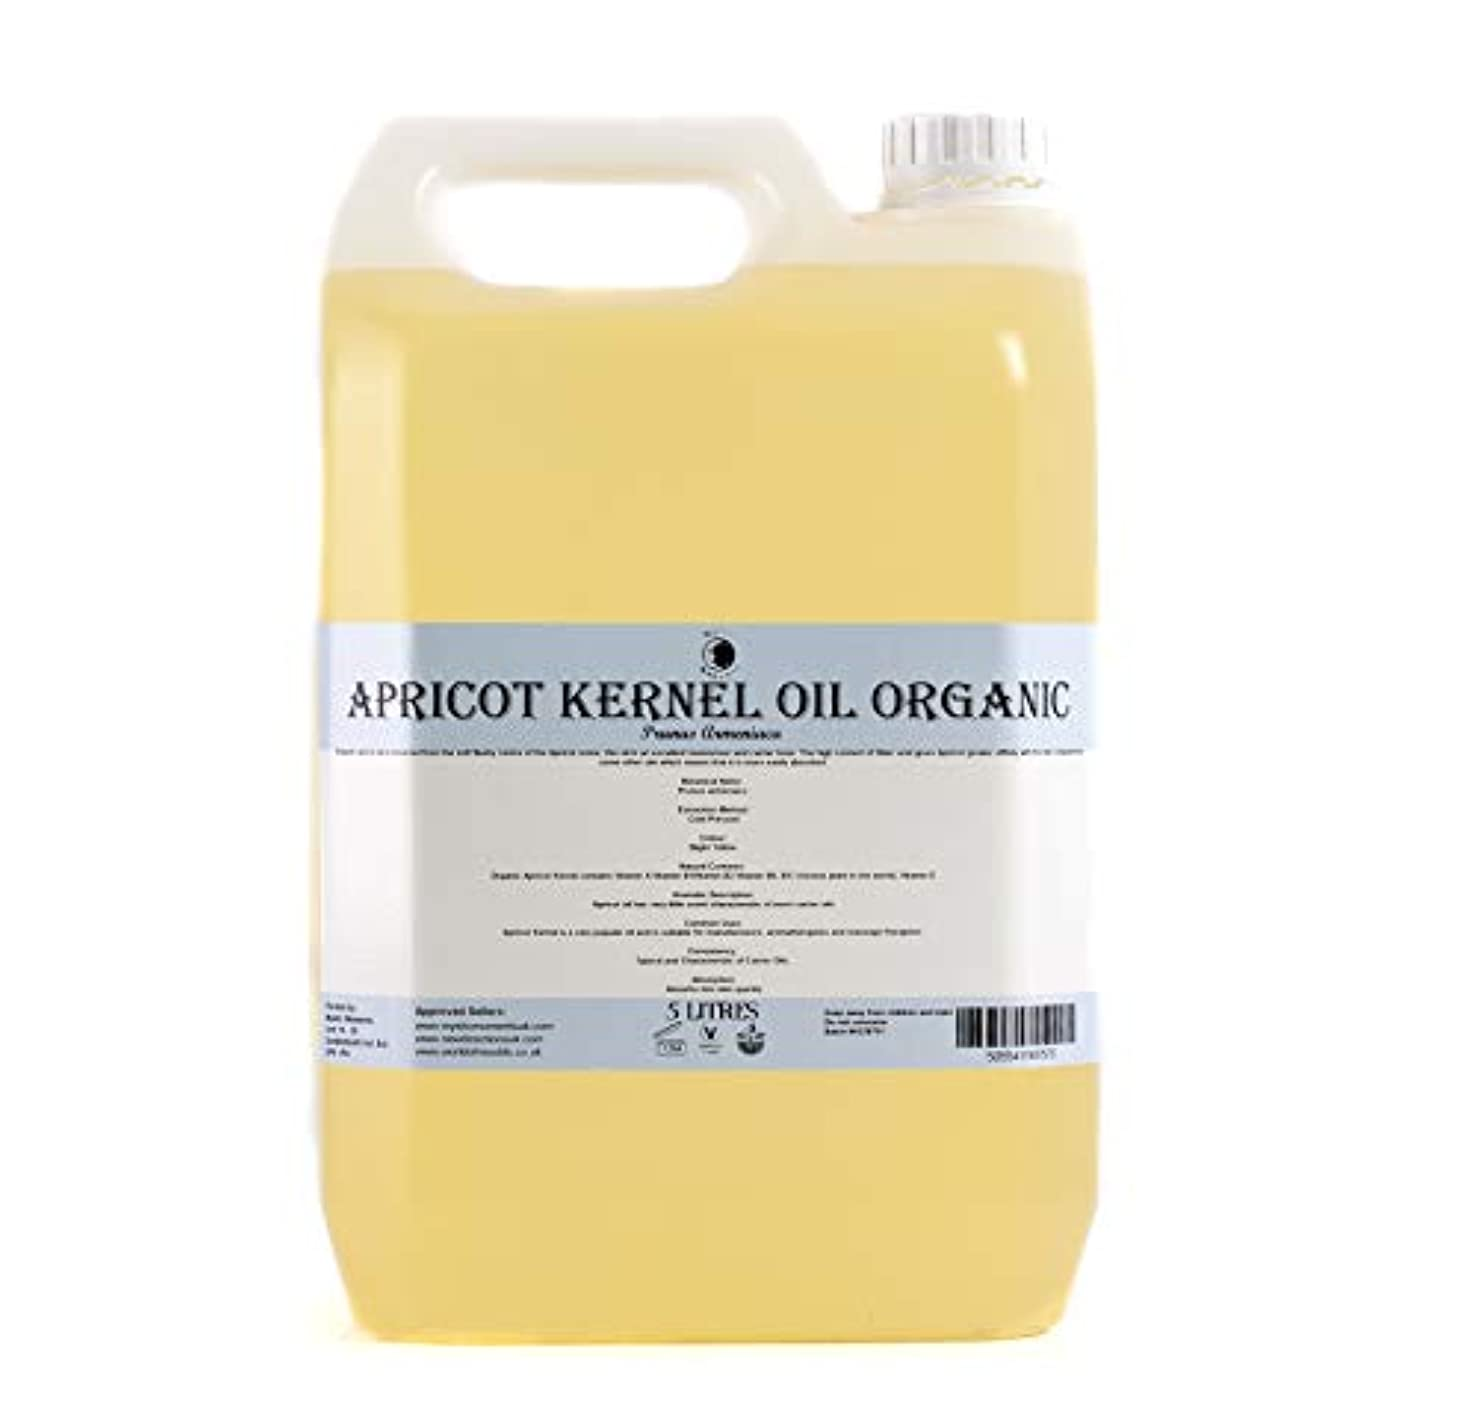 絡み合い顔料と遊ぶMystic Moments | Apricot Kernel Organic Carrier Oil - 5 Litres - 100% Pure